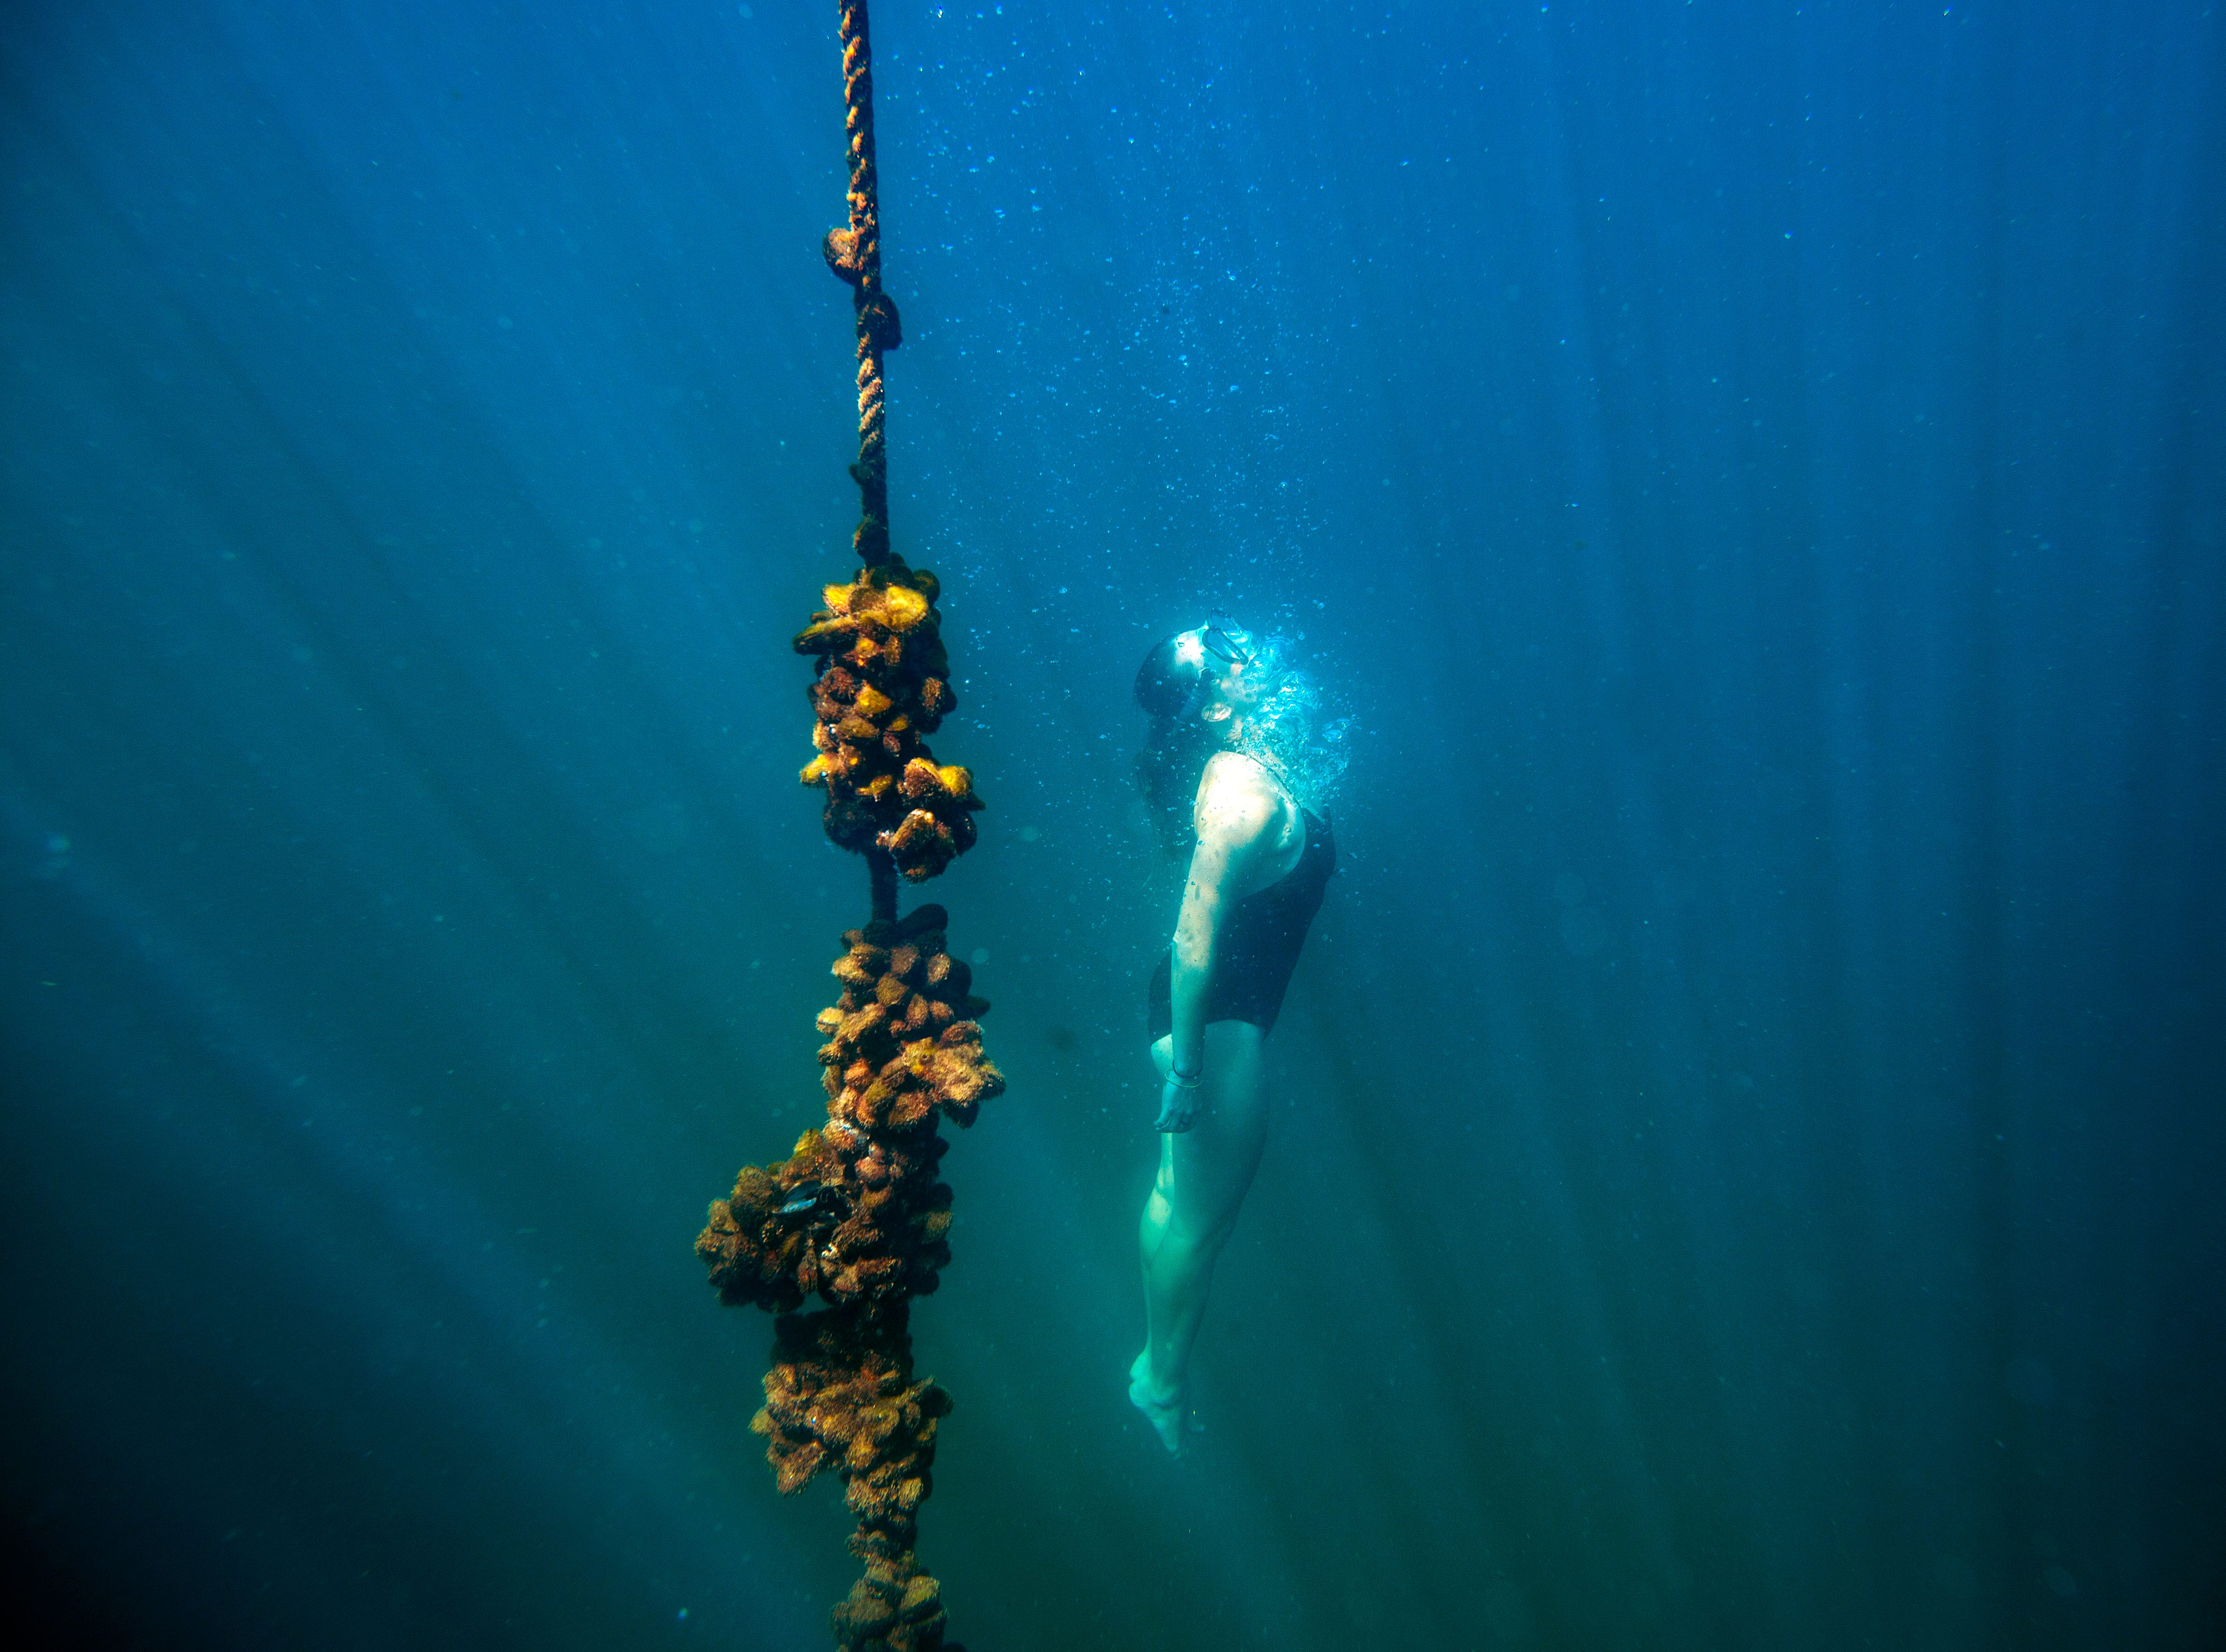 A snorkeler dives to identify species during a marine biology survey in the Indian Ocean in False Bay. Overall, the 20 warmest years on record have been in the past 22 years, with the top four in the past four years, according to the WMO.